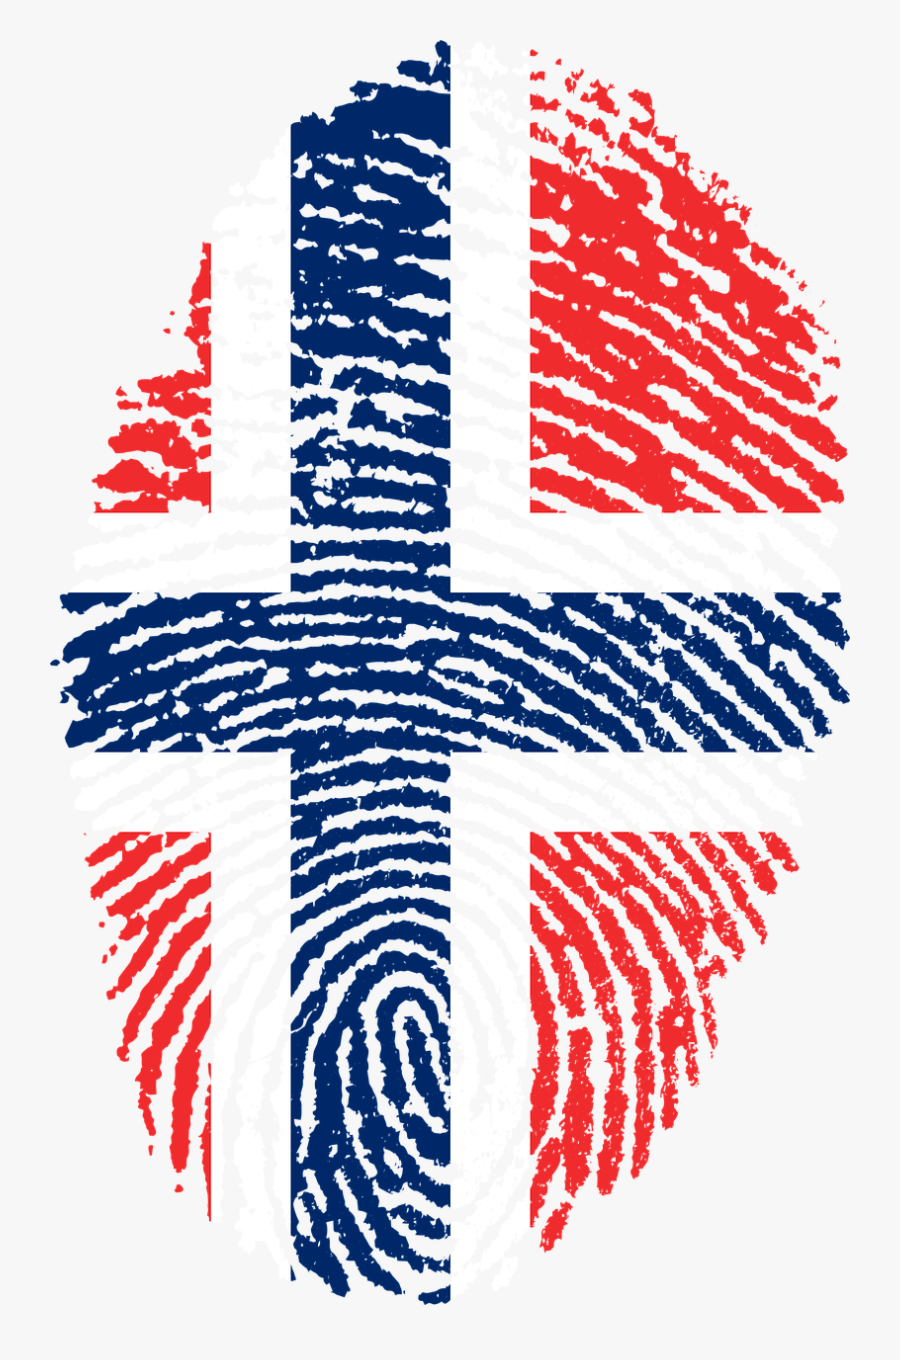 Pin By Cynthia Wright On Tattoos - Norway Flag Fingerprint, Transparent Clipart